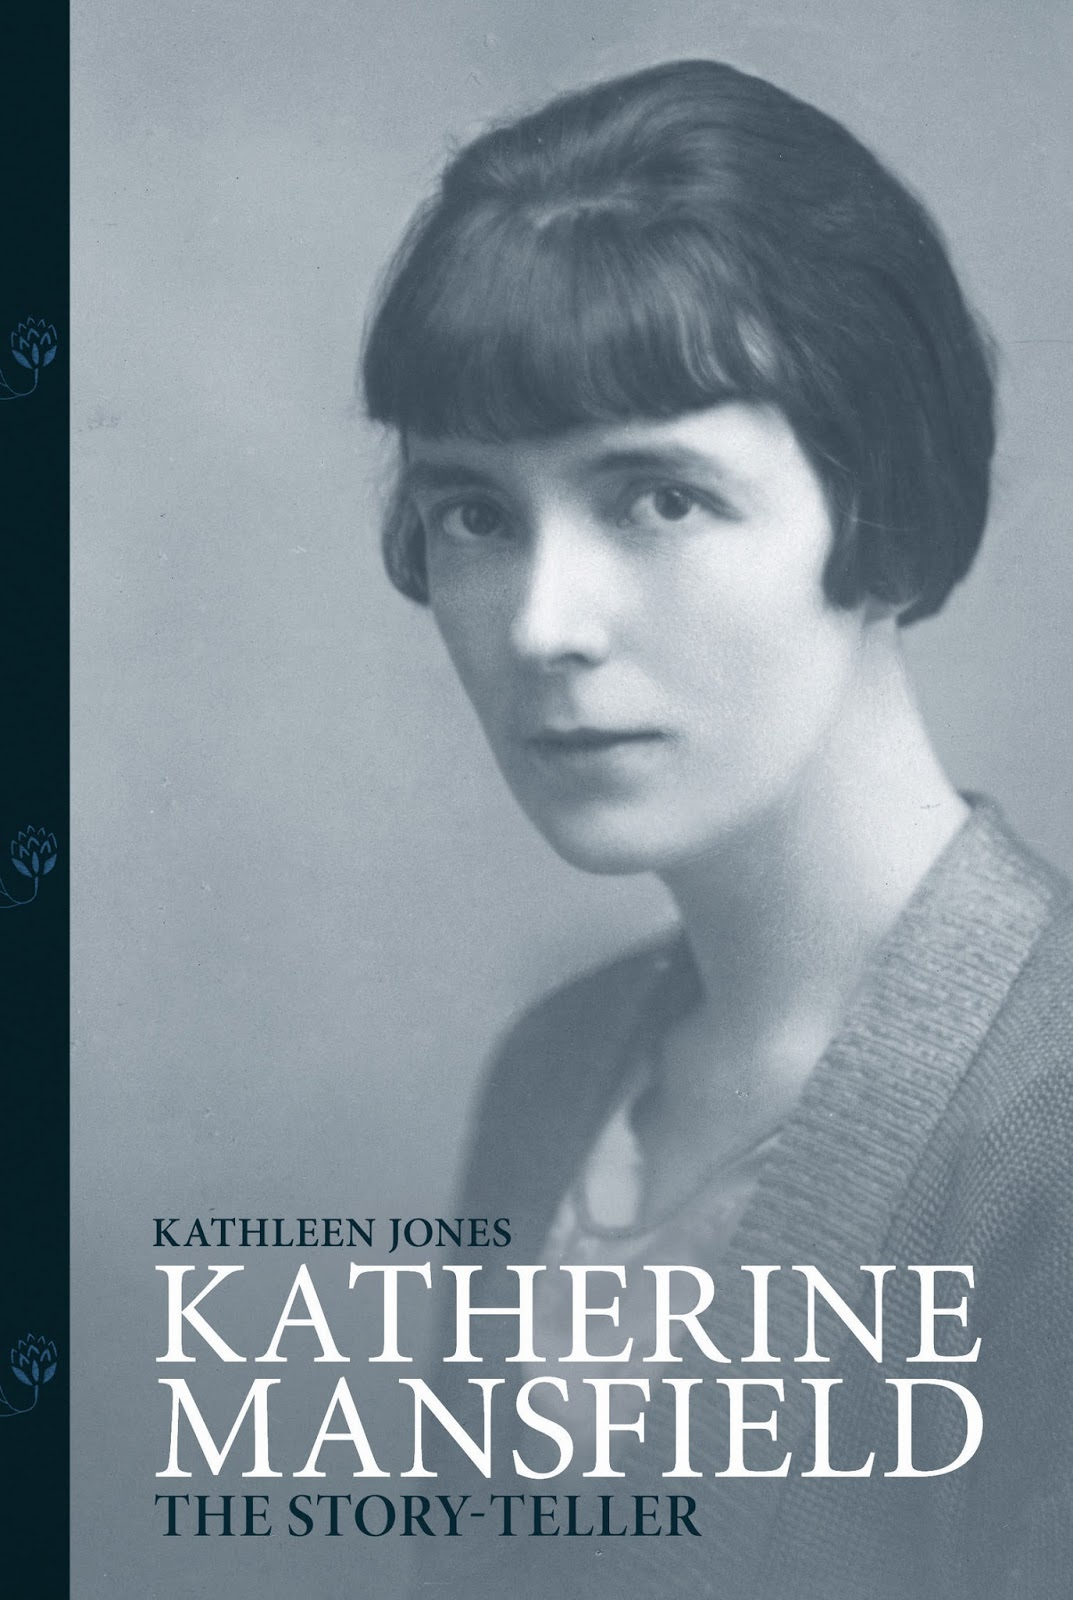 Gender, Truth and Reality: The Short Stories of Katherine Mansfield